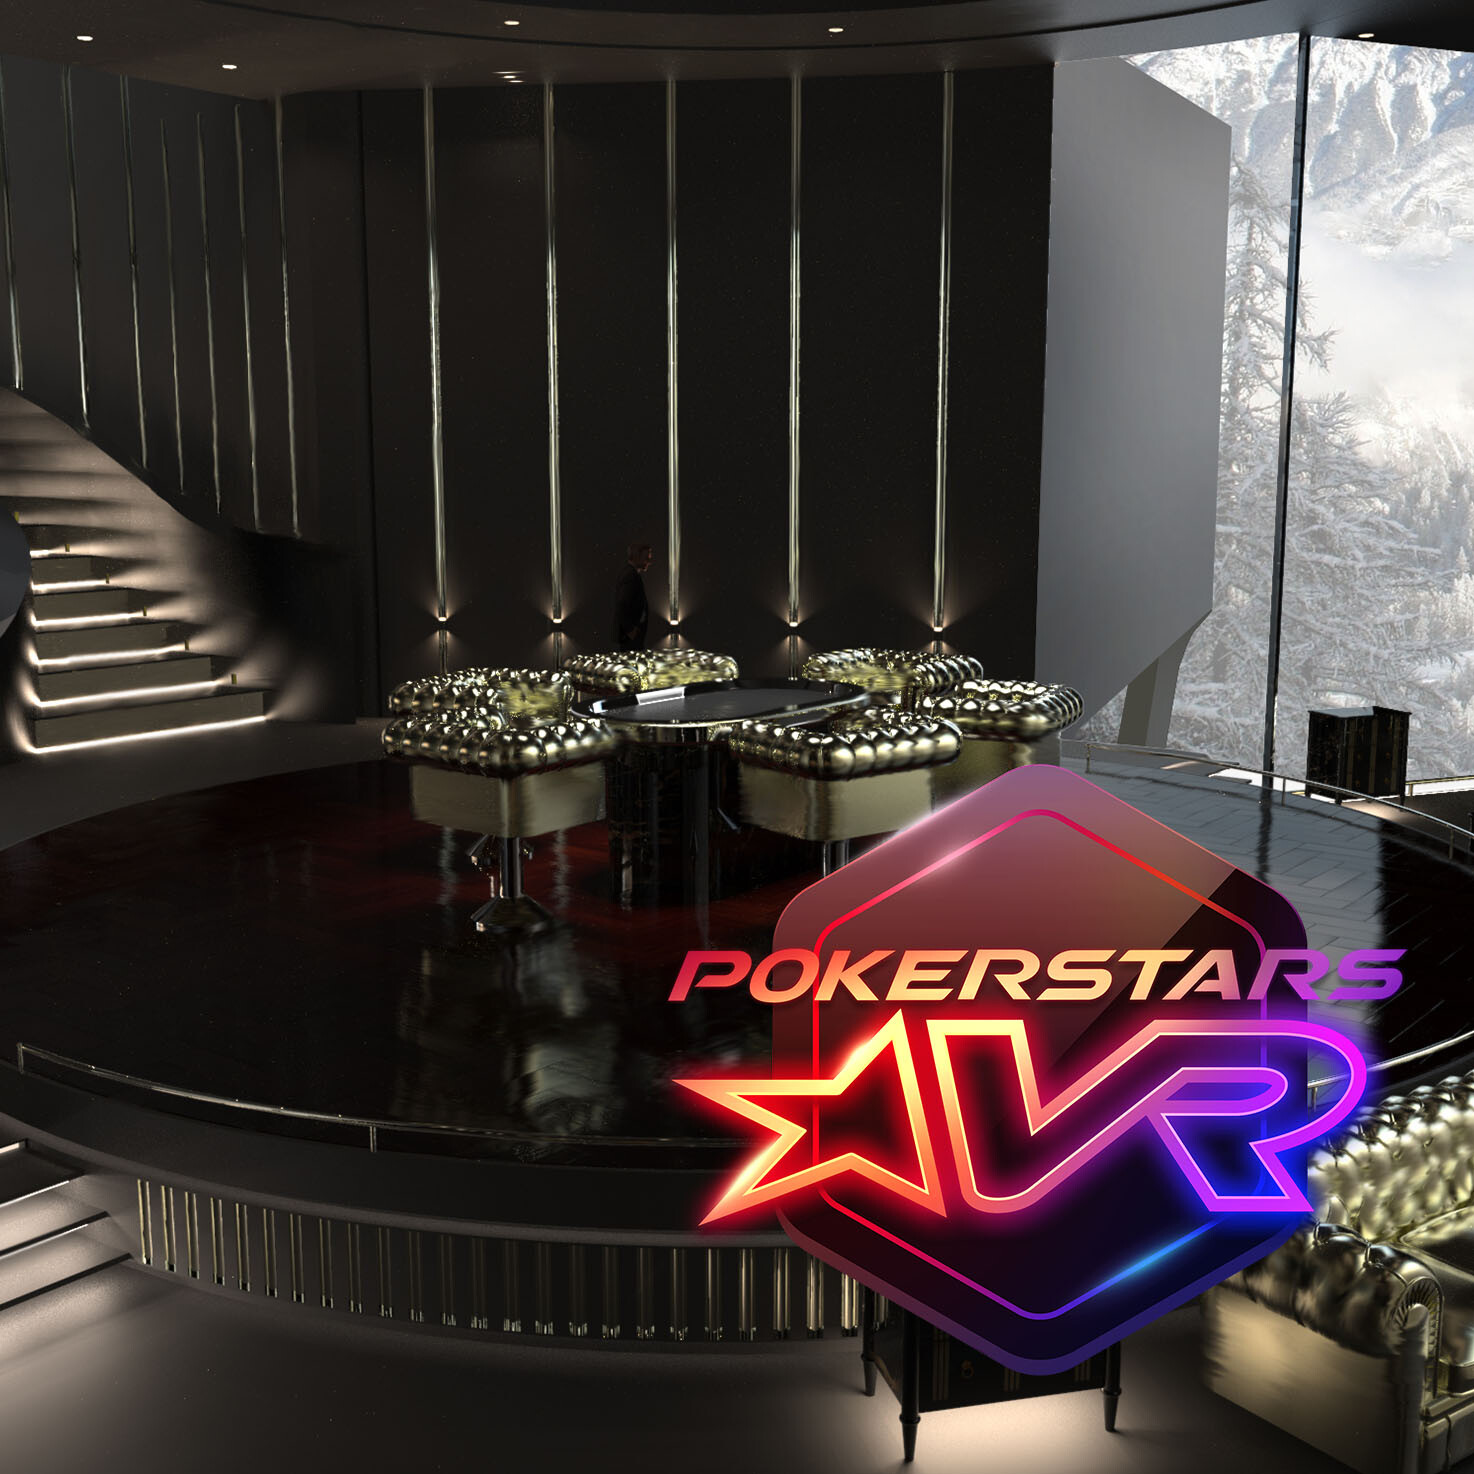 Pokerstars VR Spies